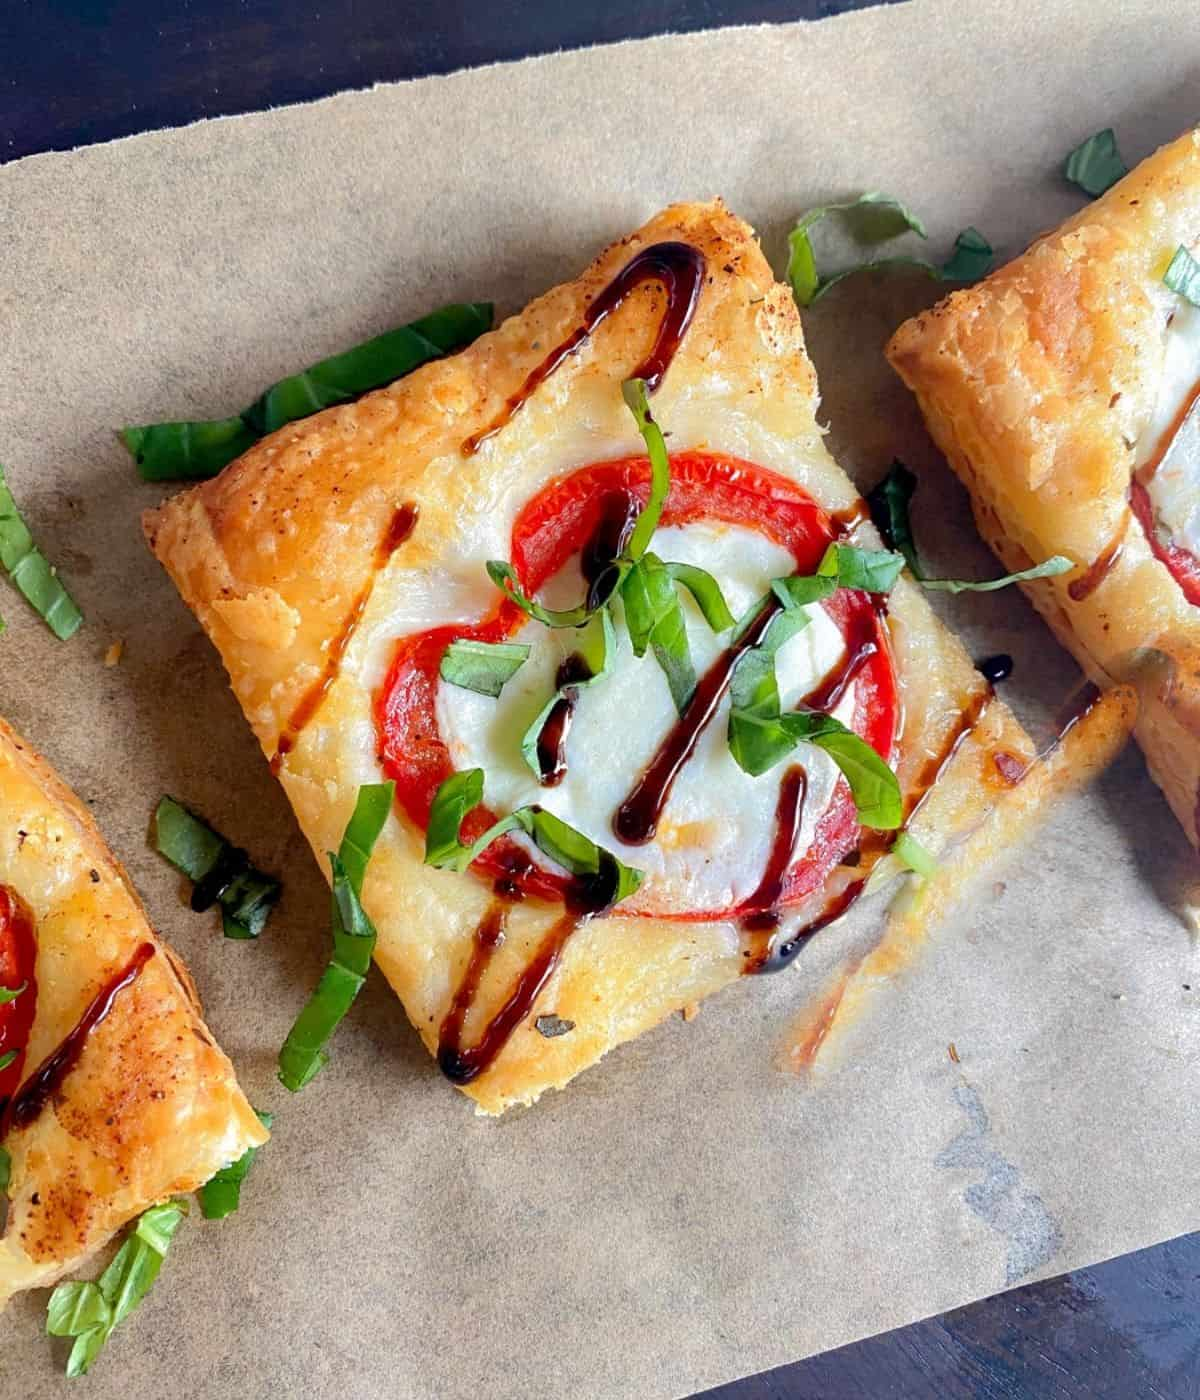 Puff pastry pizza with basil, mozzarella cheese and tomatoes.